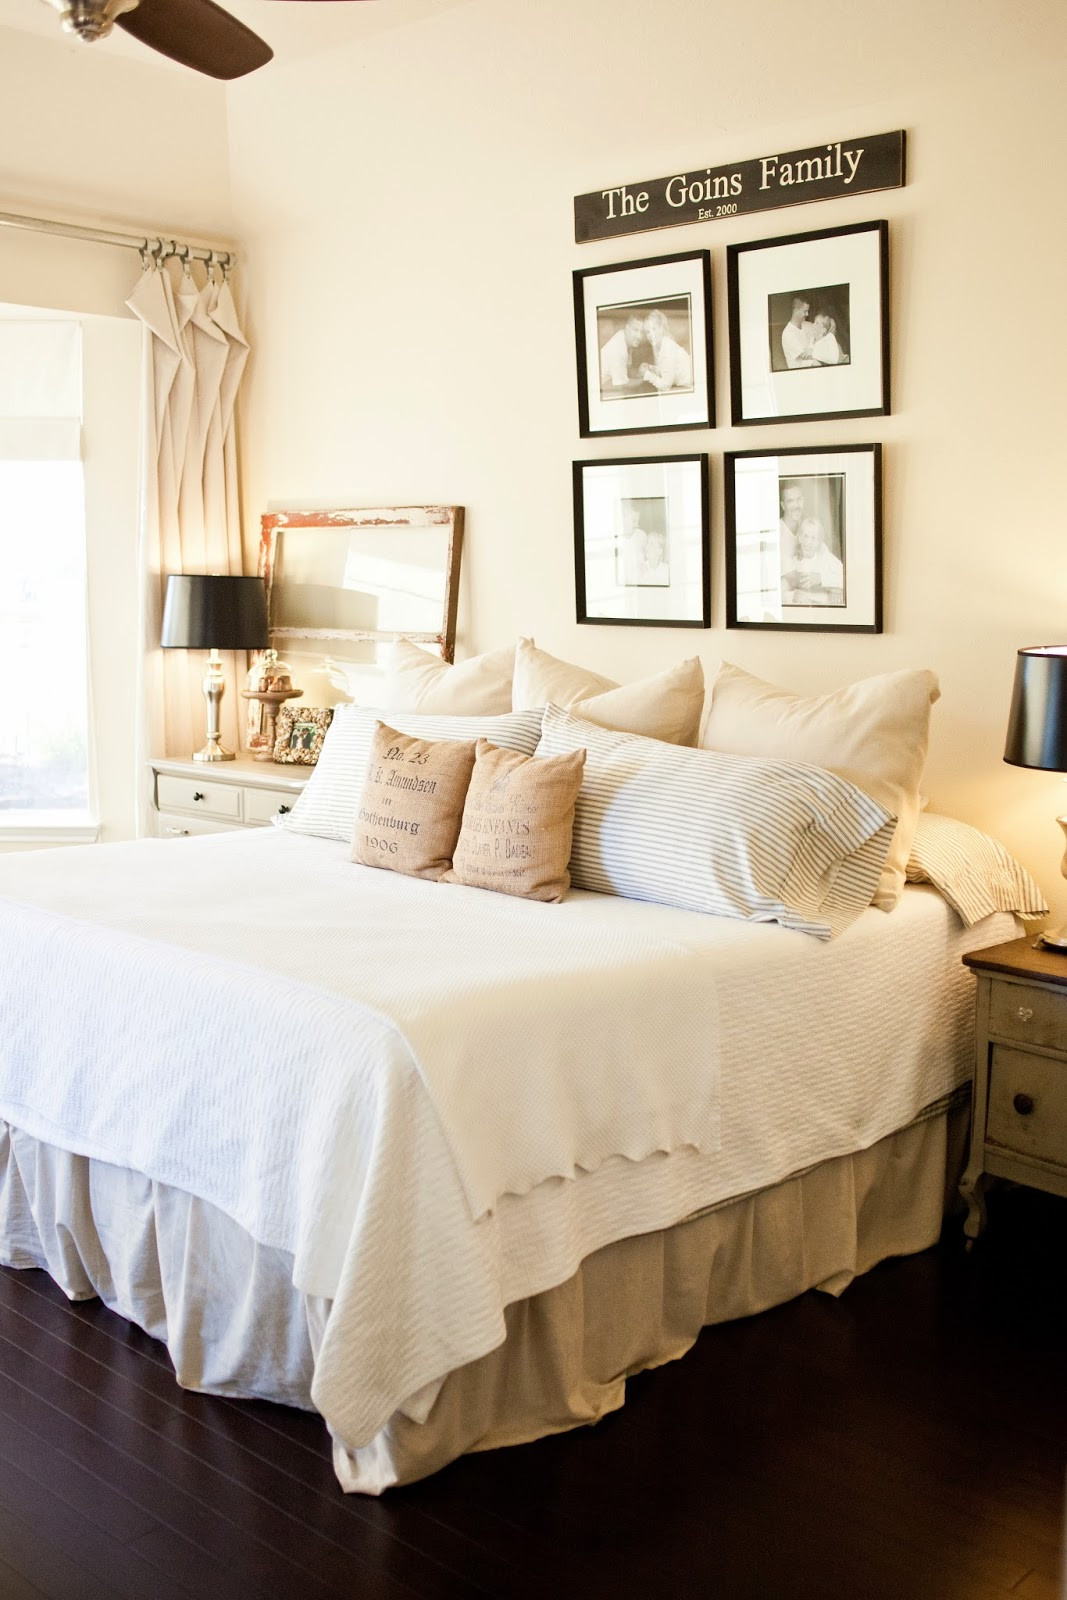 Best ideas about Master Bedroom Decor . Save or Pin the little cottage on the pond Our master bedroom Now.